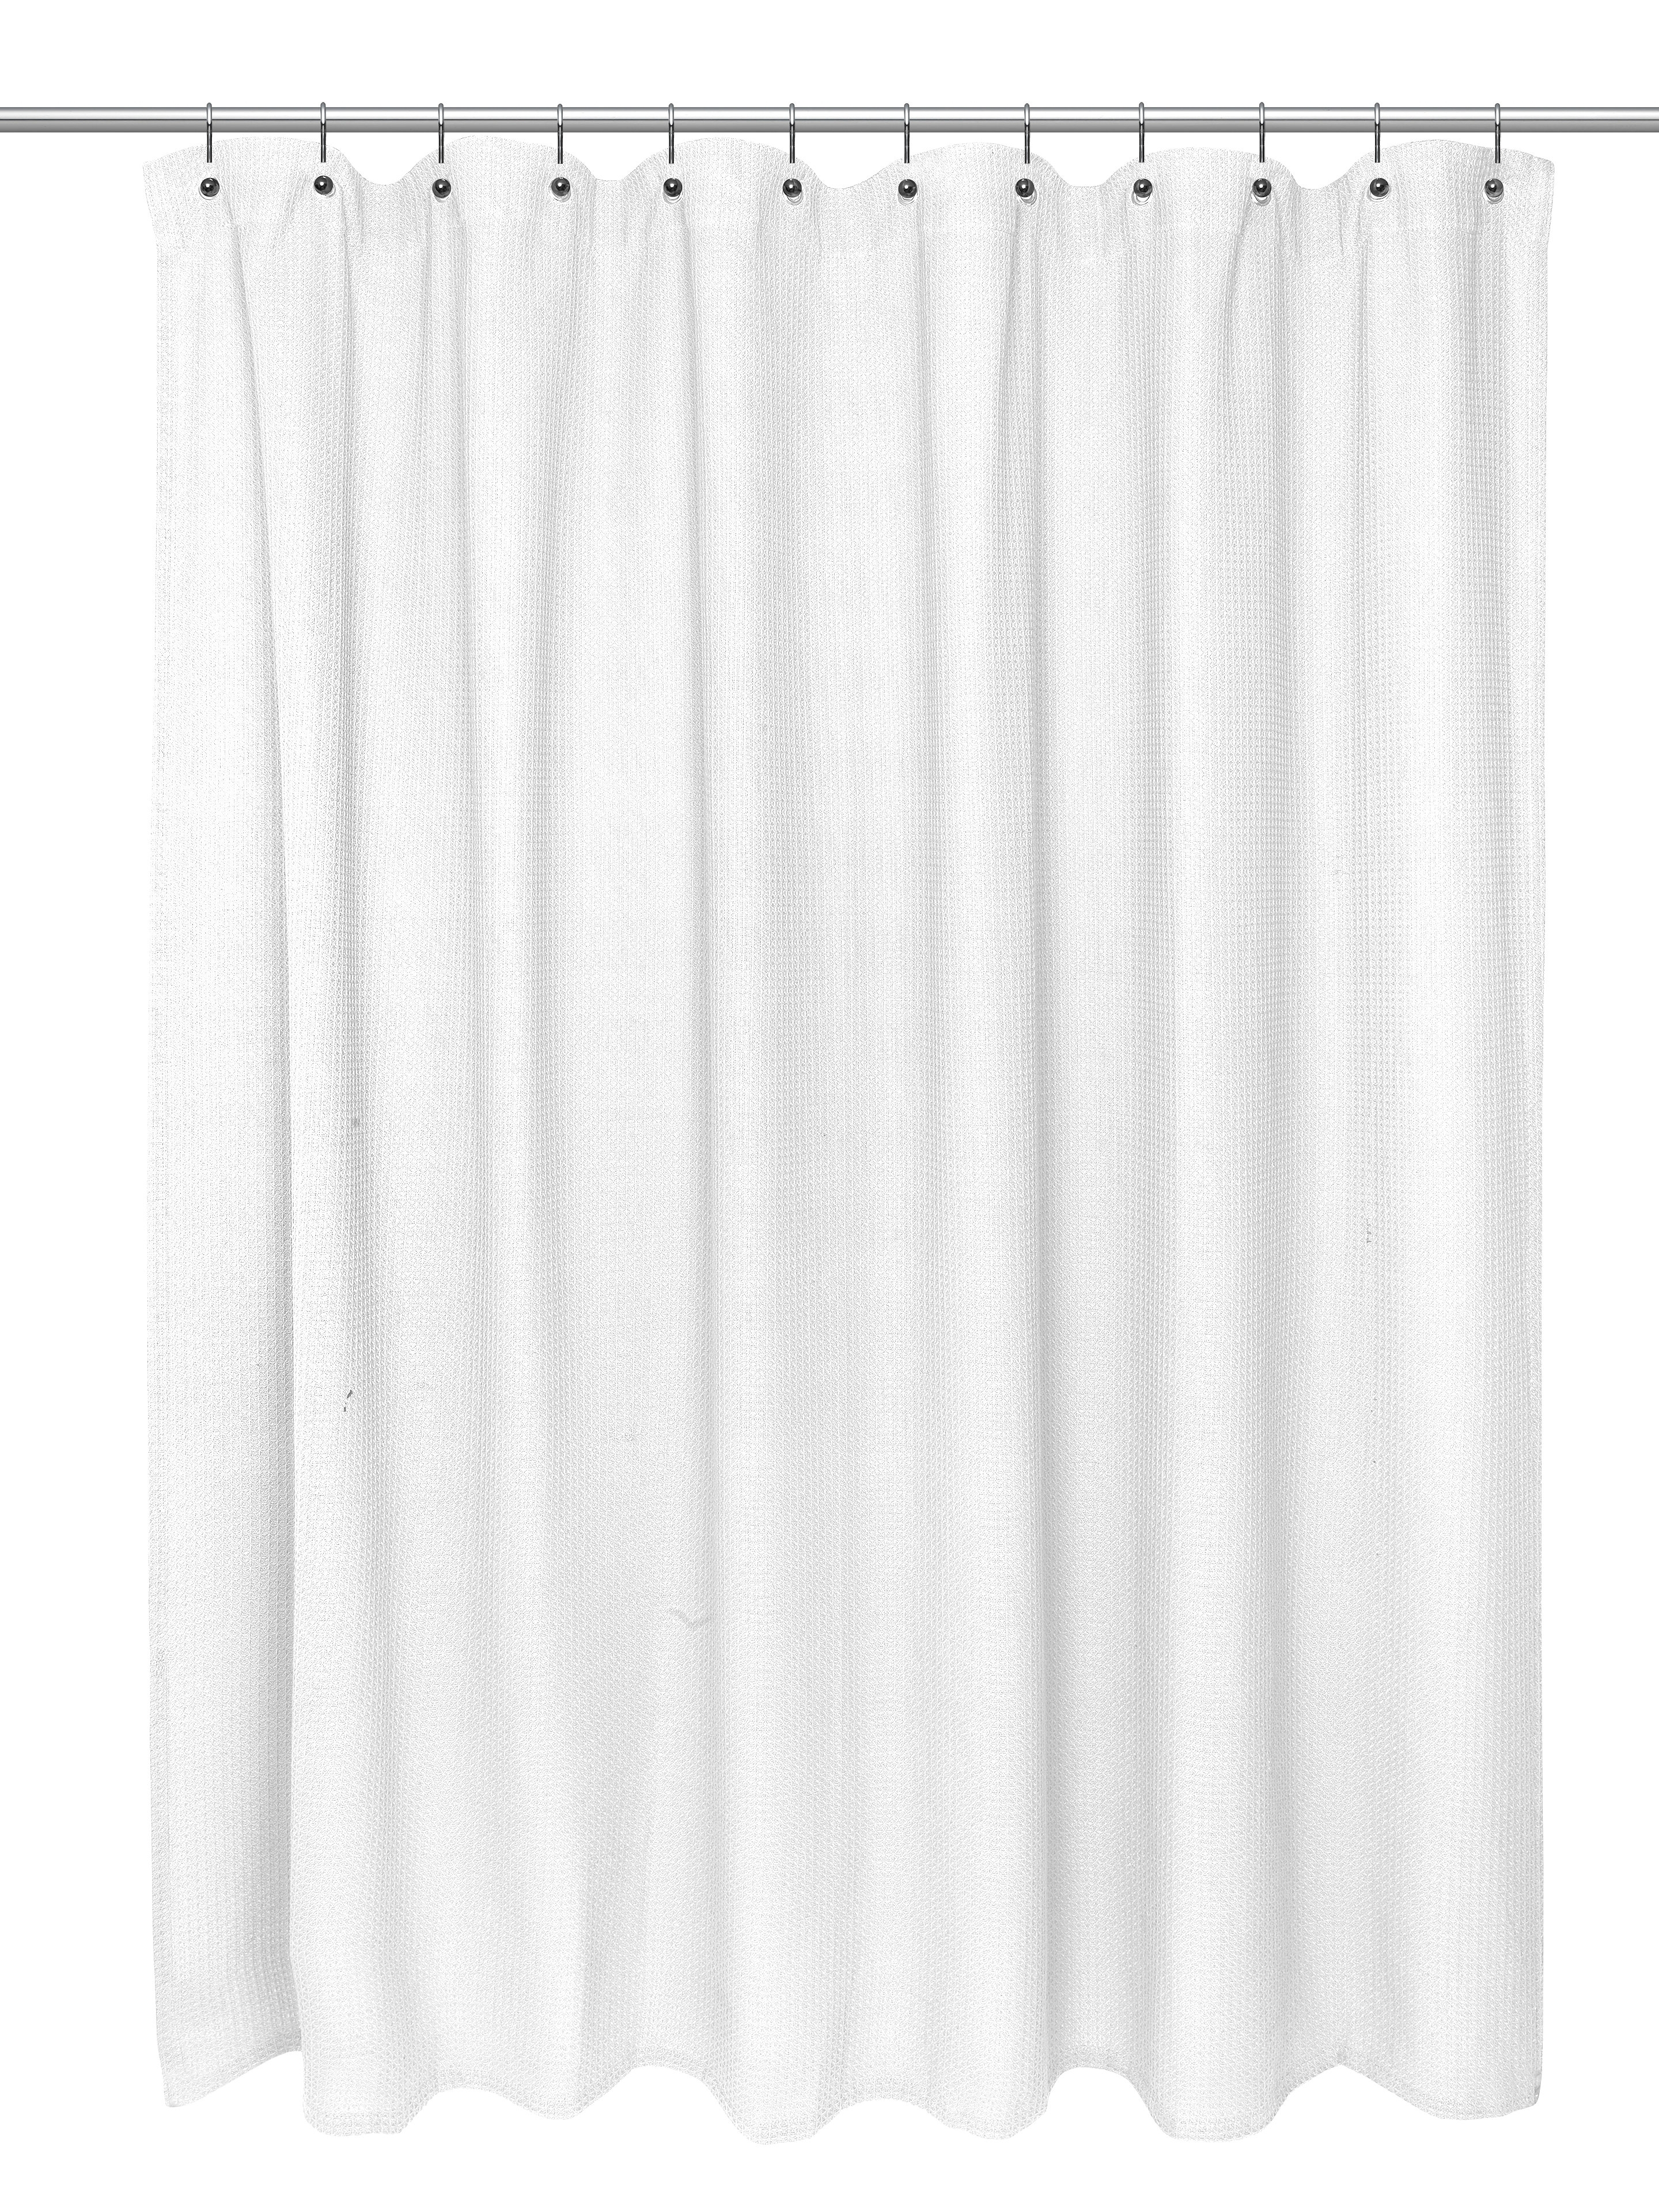 Extra Long Cotton Waffle Shower Curtain • Shower Curtains Ideas